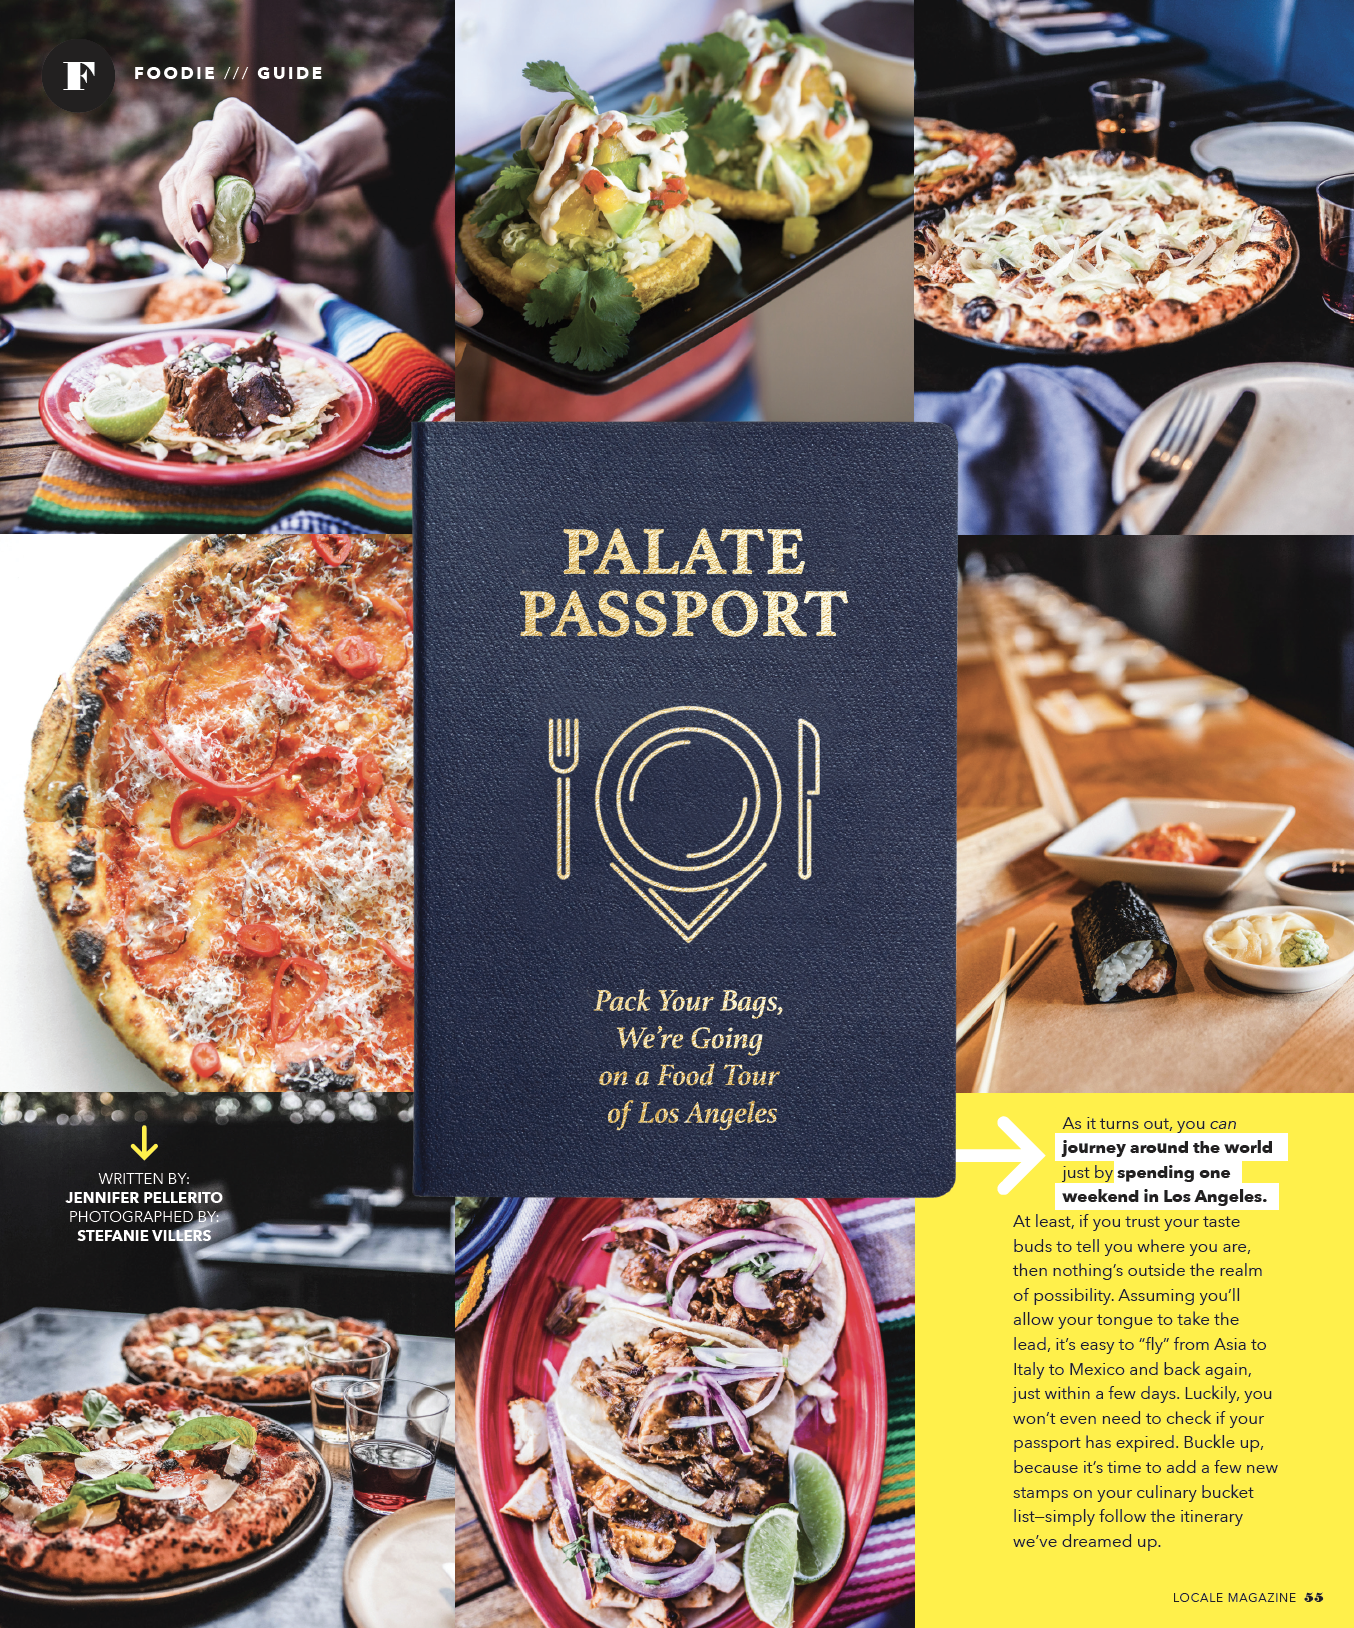 "LOCALE Magazine - For LOCALE's February 2019 issue, I wrote a ""palate passport"" to the top sushi, pizza, and Mexican restaurants in Los Angeles.""Cannoli imagine one more slice, please. Who says NY has the only good pizza in America? Not us. Vito's Pizza hits a high note that so many others just can't reach. Skip the red sauce and go for The Sophia Loren with caramelized onions, goat cheese, arugula and pine nuts. Yum!""Read the full article, which appeared in print."